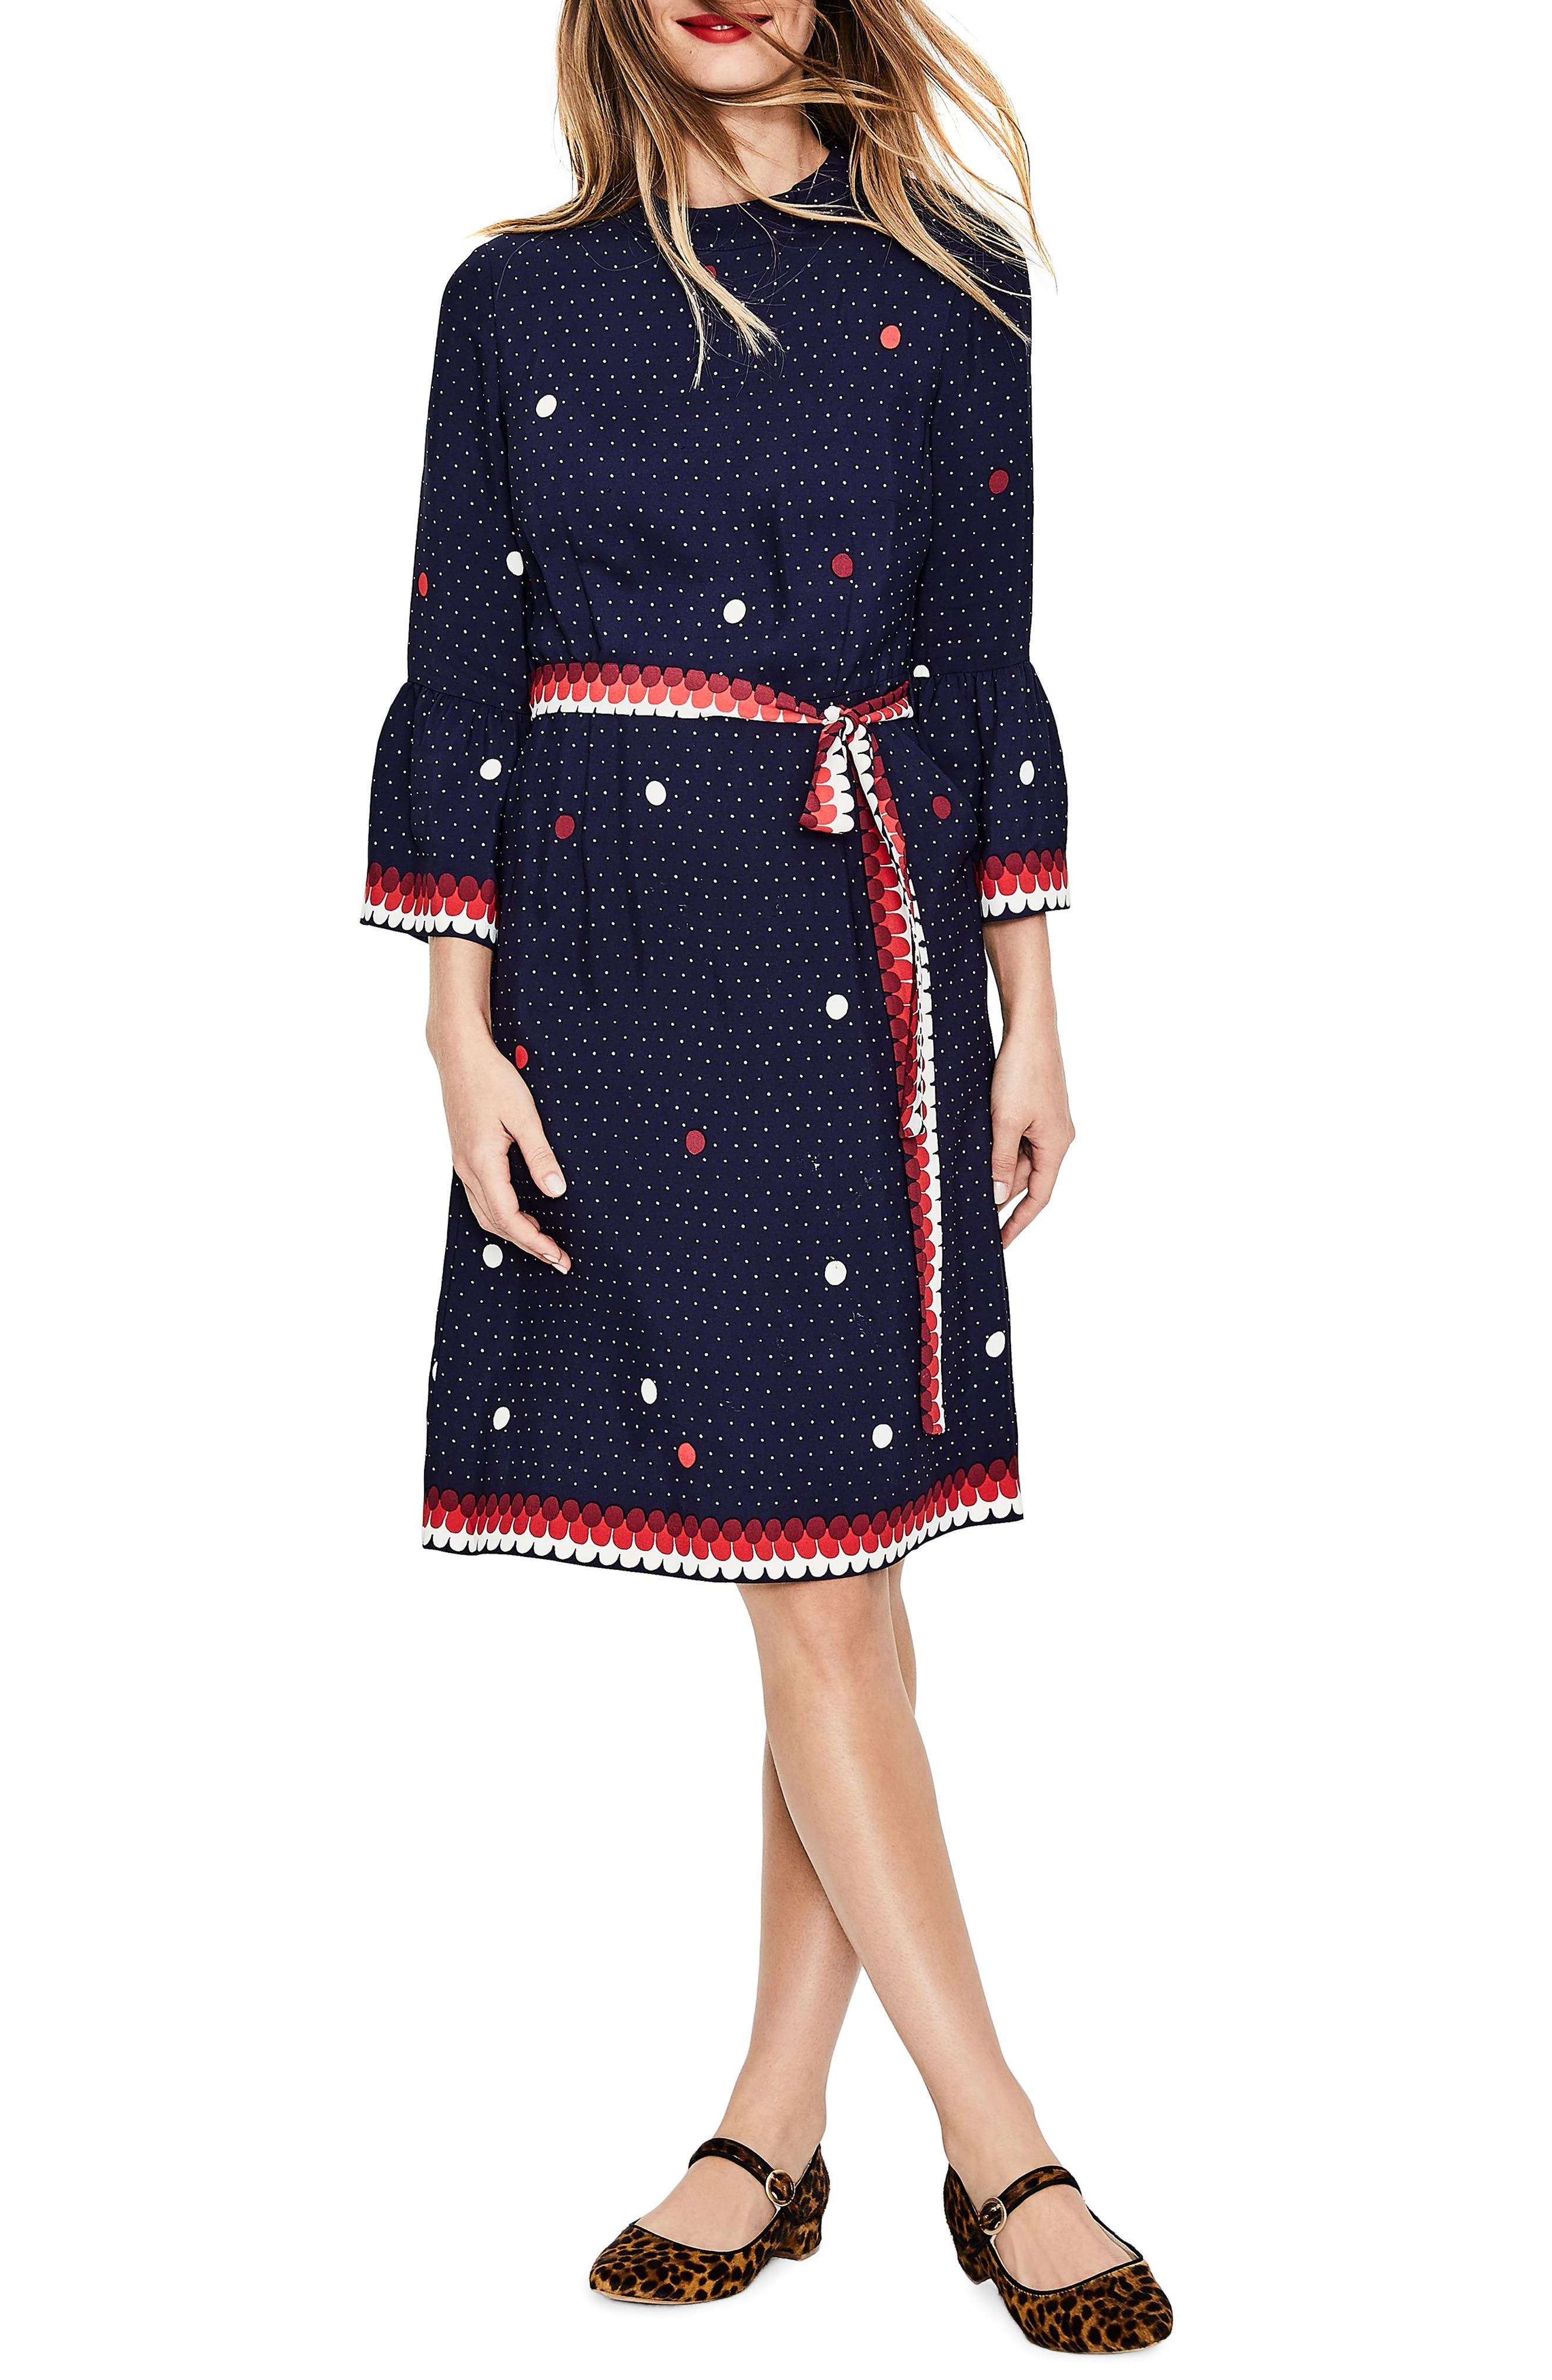 Ruffle Sleeve Polka Dot DRess,                             Main thumbnail 1, color,                             Navy/ Spot Border